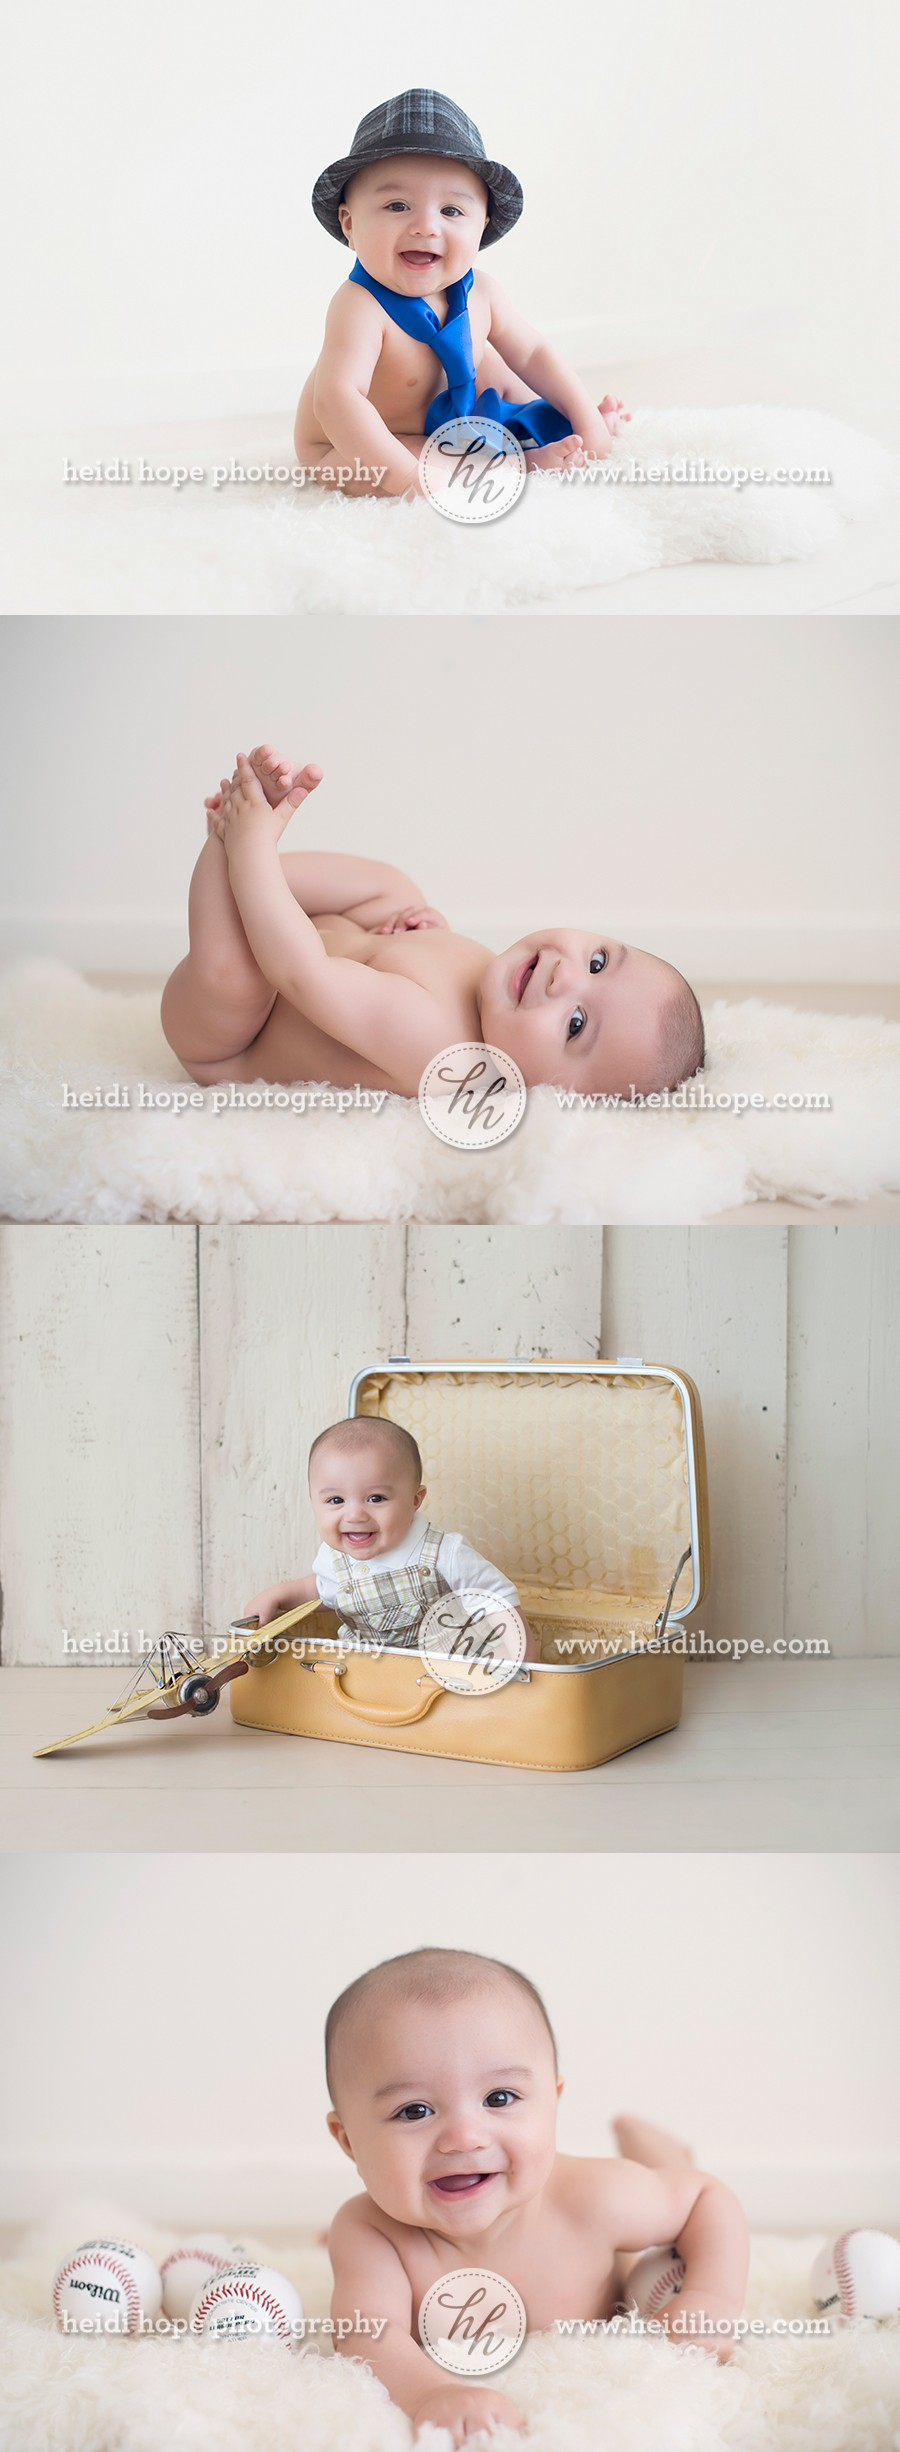 massachusetts baby photographer 6 month old baby portraits with fun props